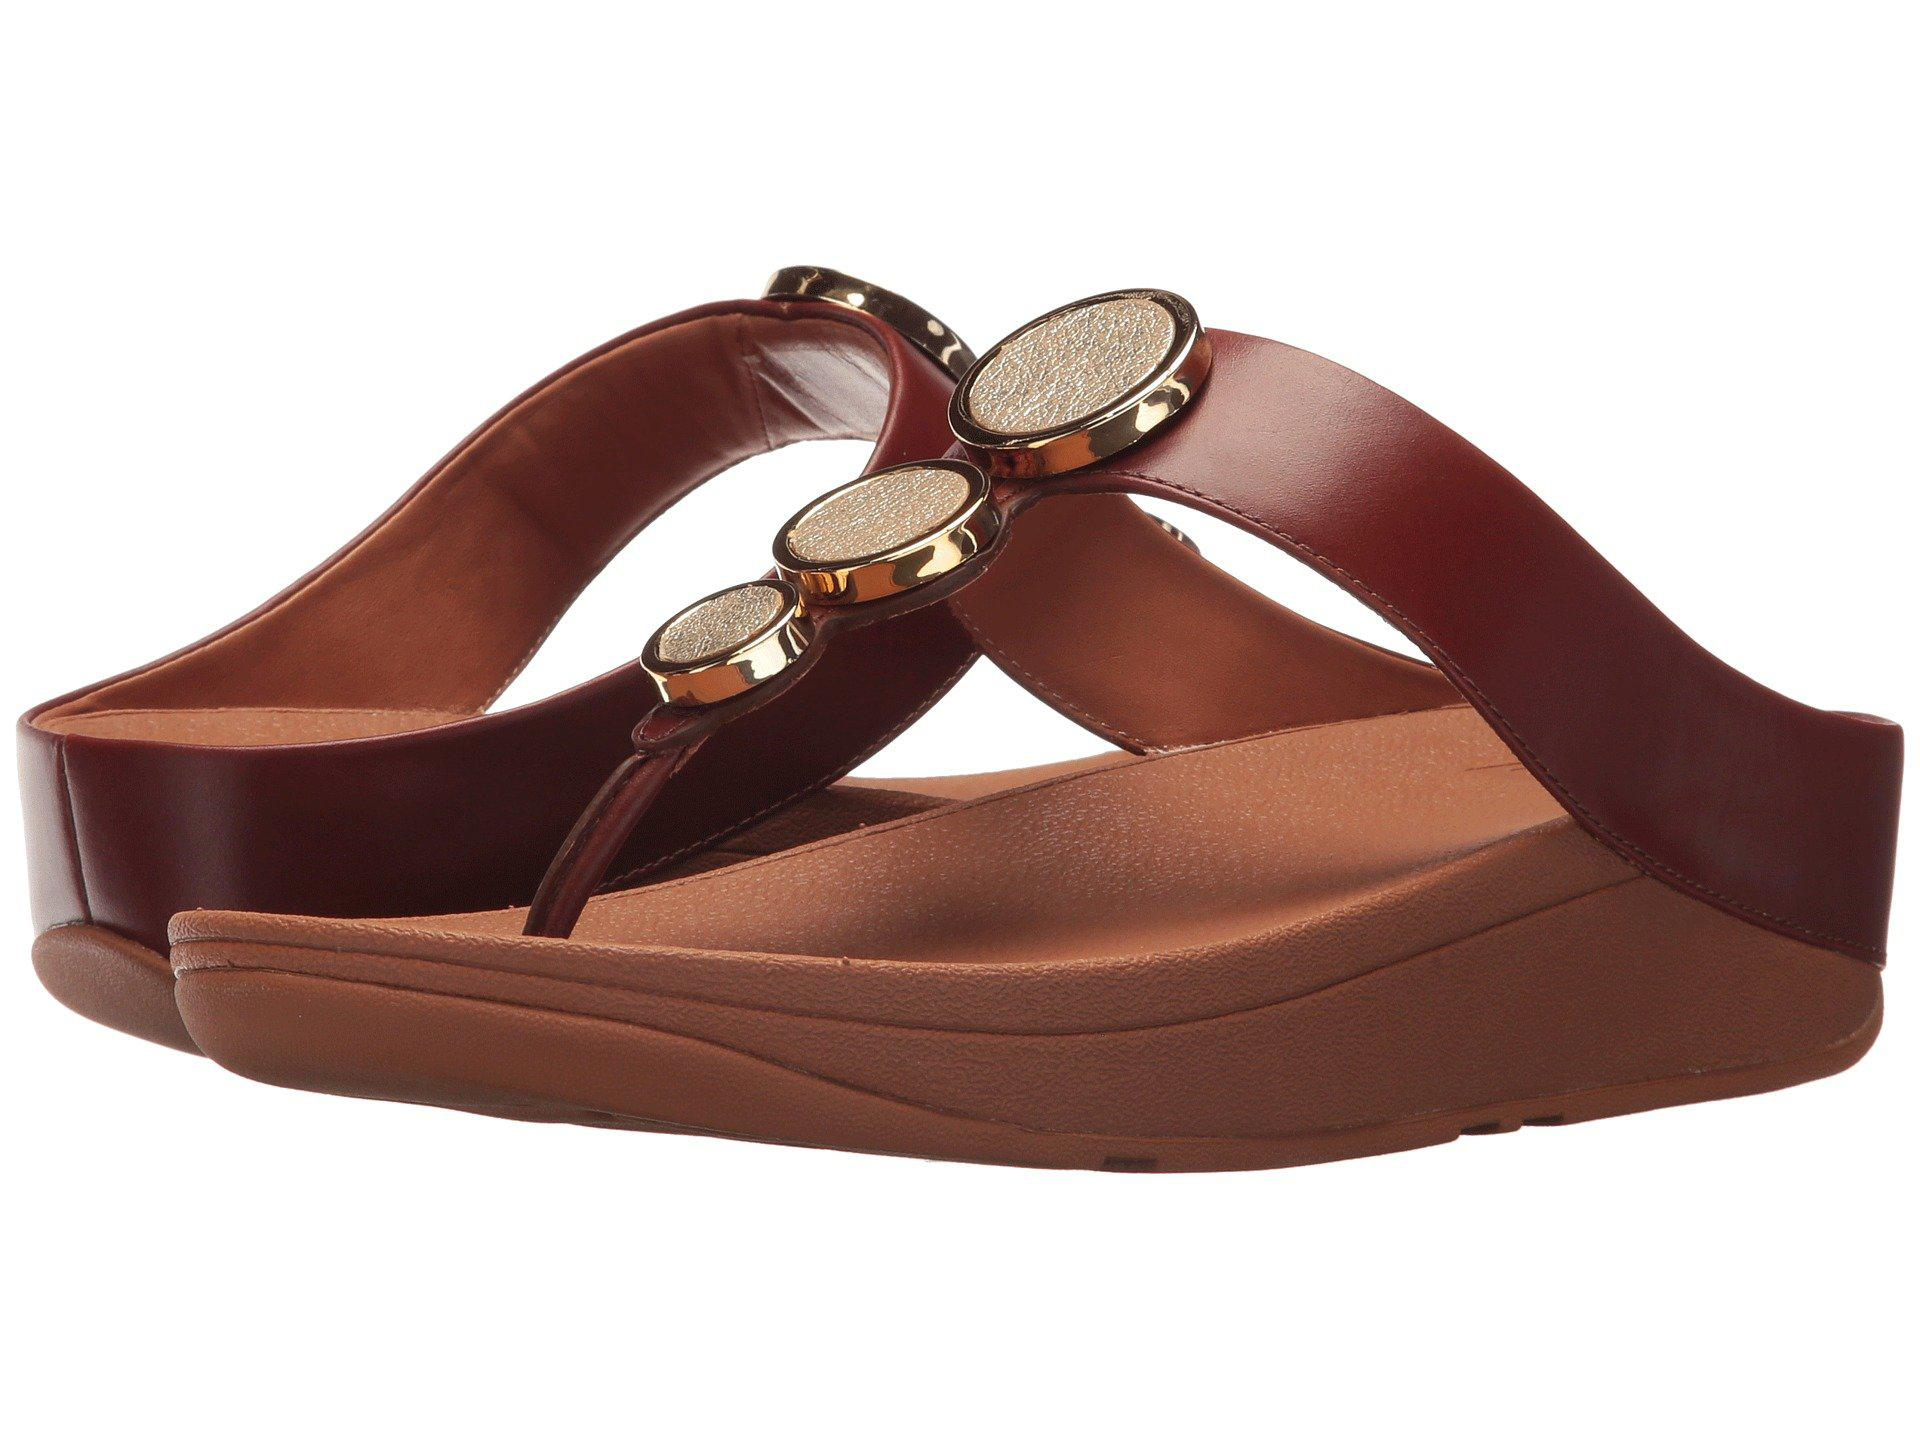 Fitflop Leather Halo Toe Thong Sandals